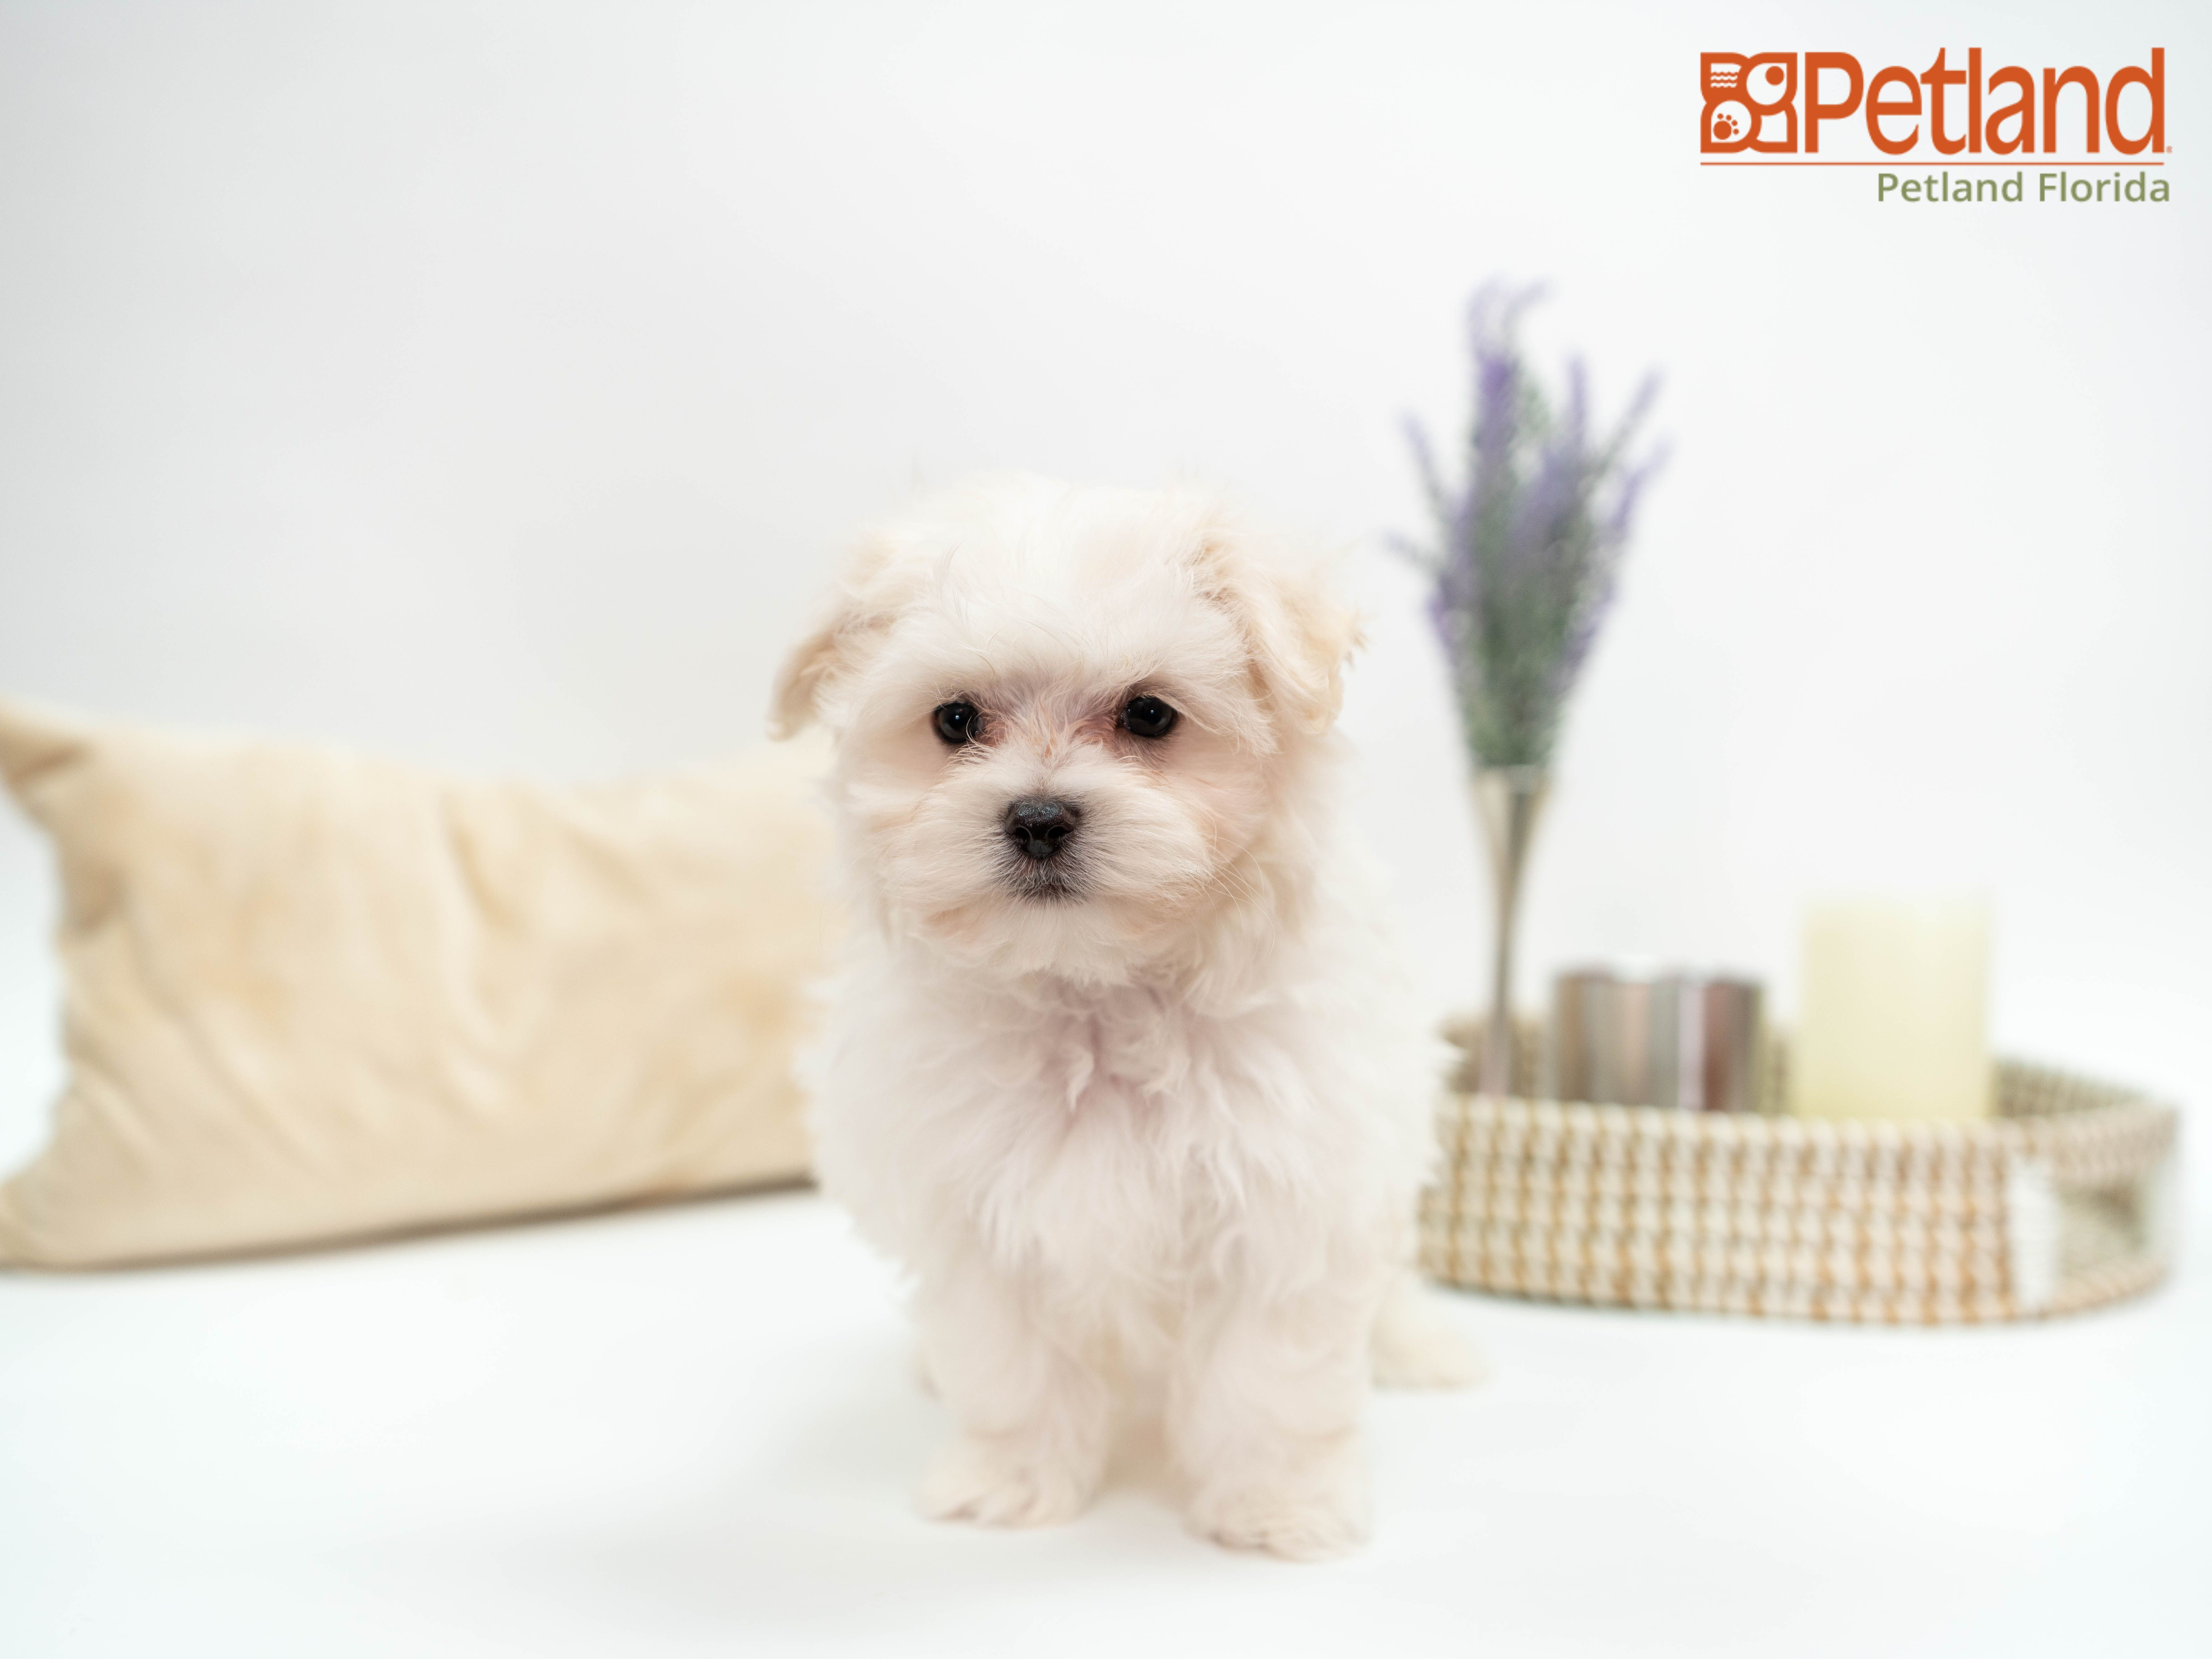 Petland florida has maltese puppies for sale check out